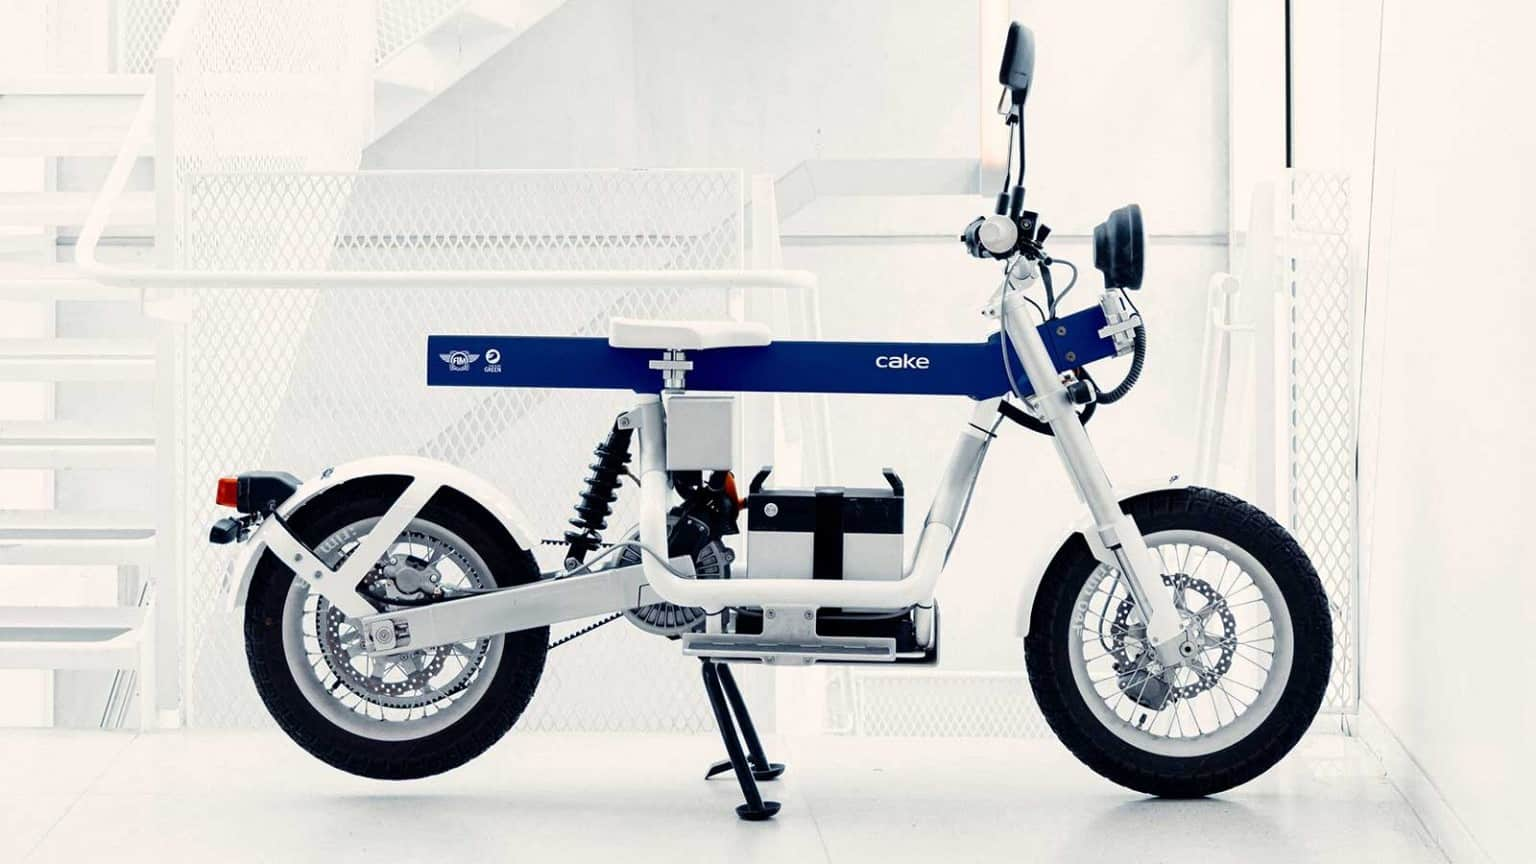 FIM cake electric motorcycle.